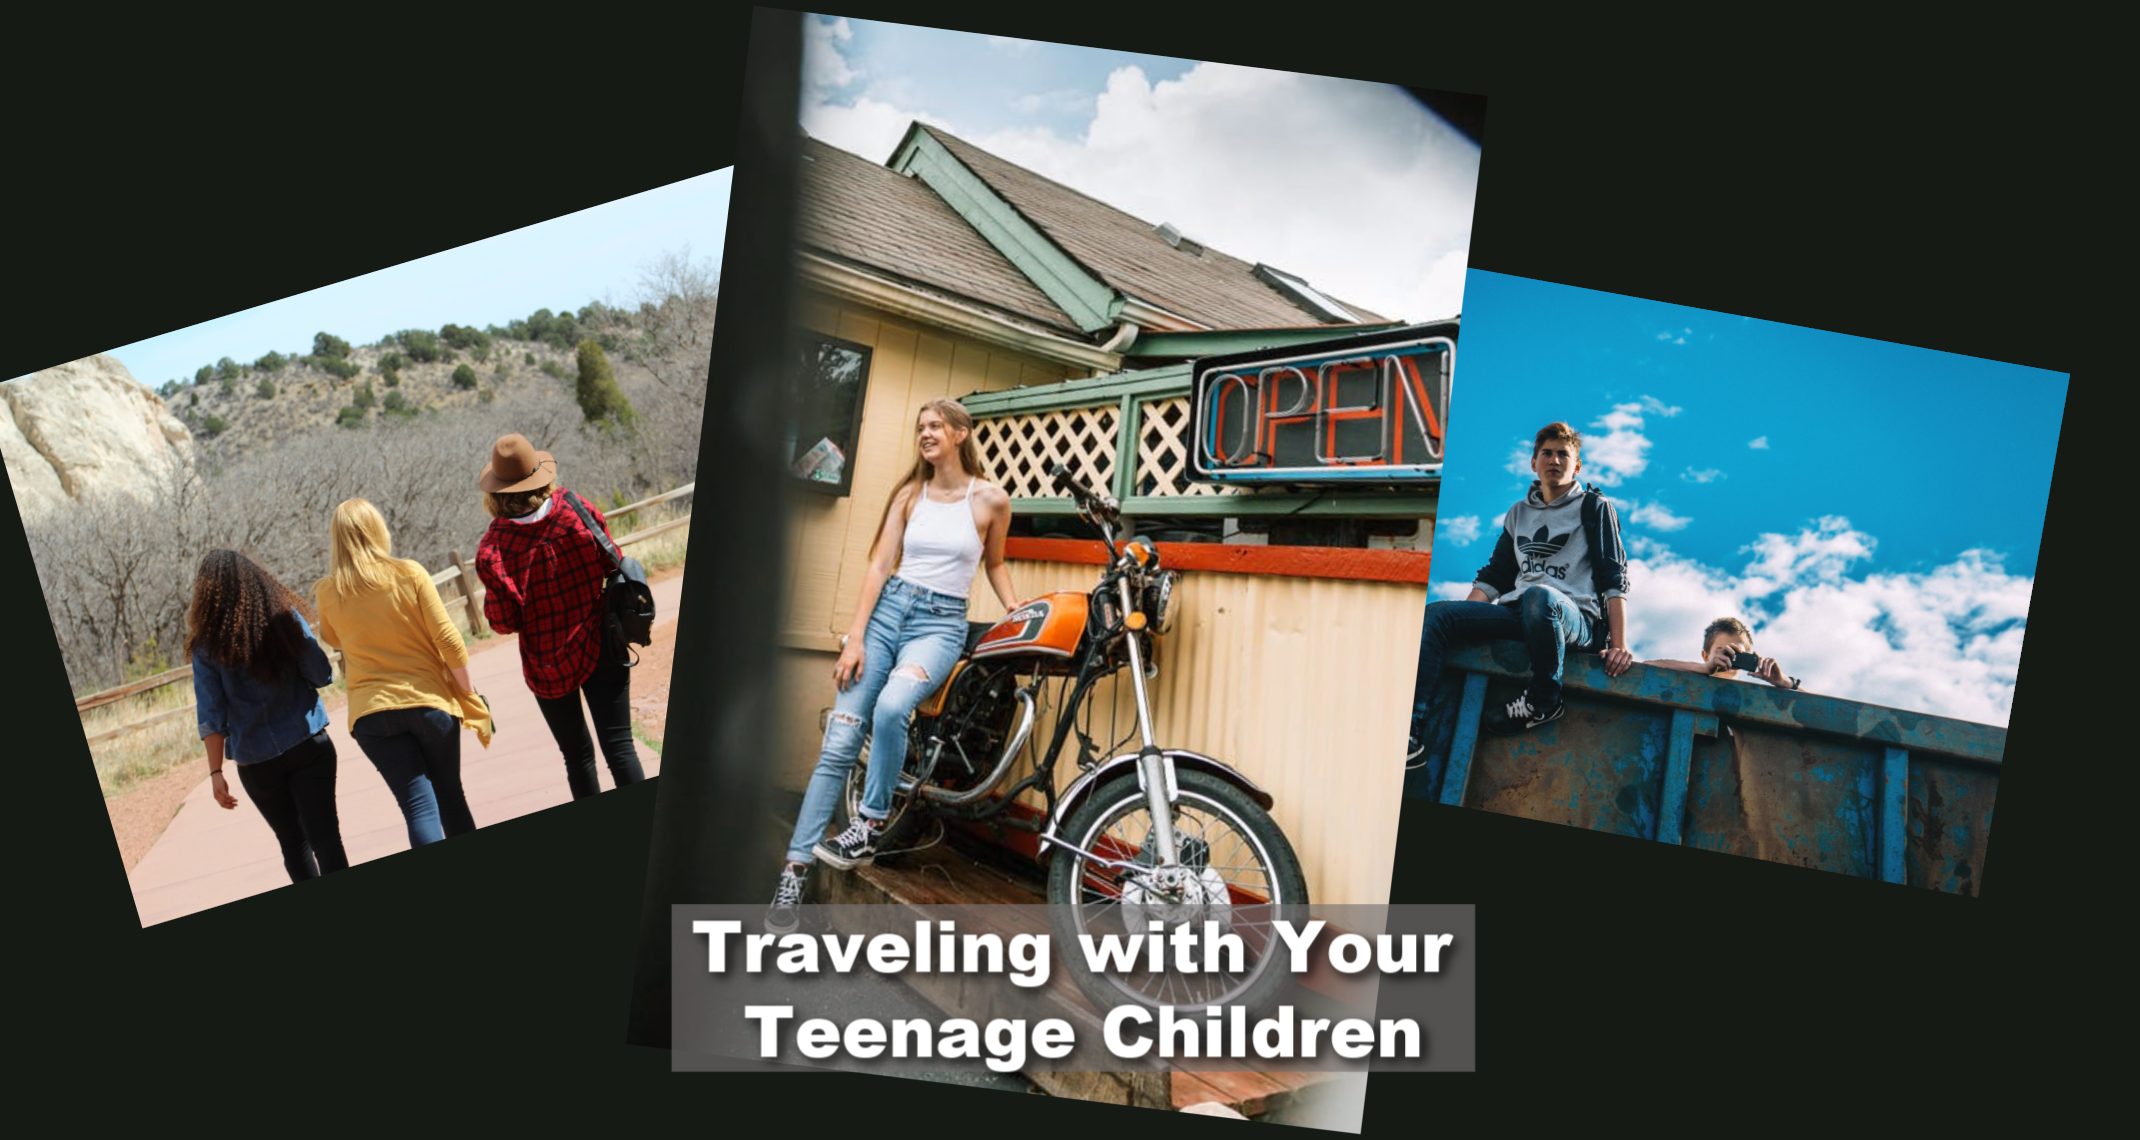 Traveling with Your Teenage Children